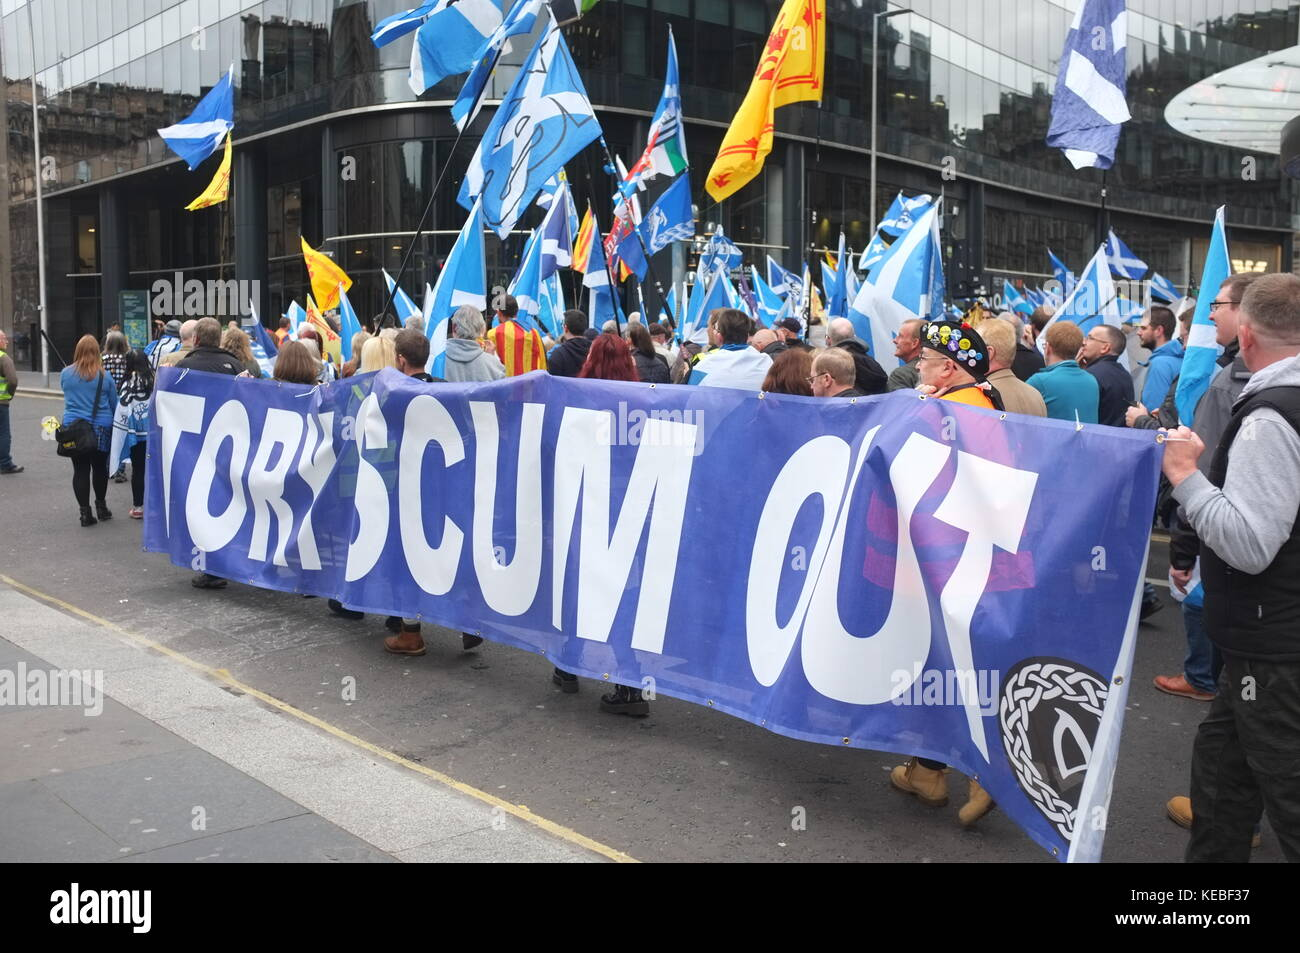 'Tory Scum Out' banner, Pro-independence rally organised by Hope Over Fear, Glasgow, Scotland, United Kingdom. - Stock Image